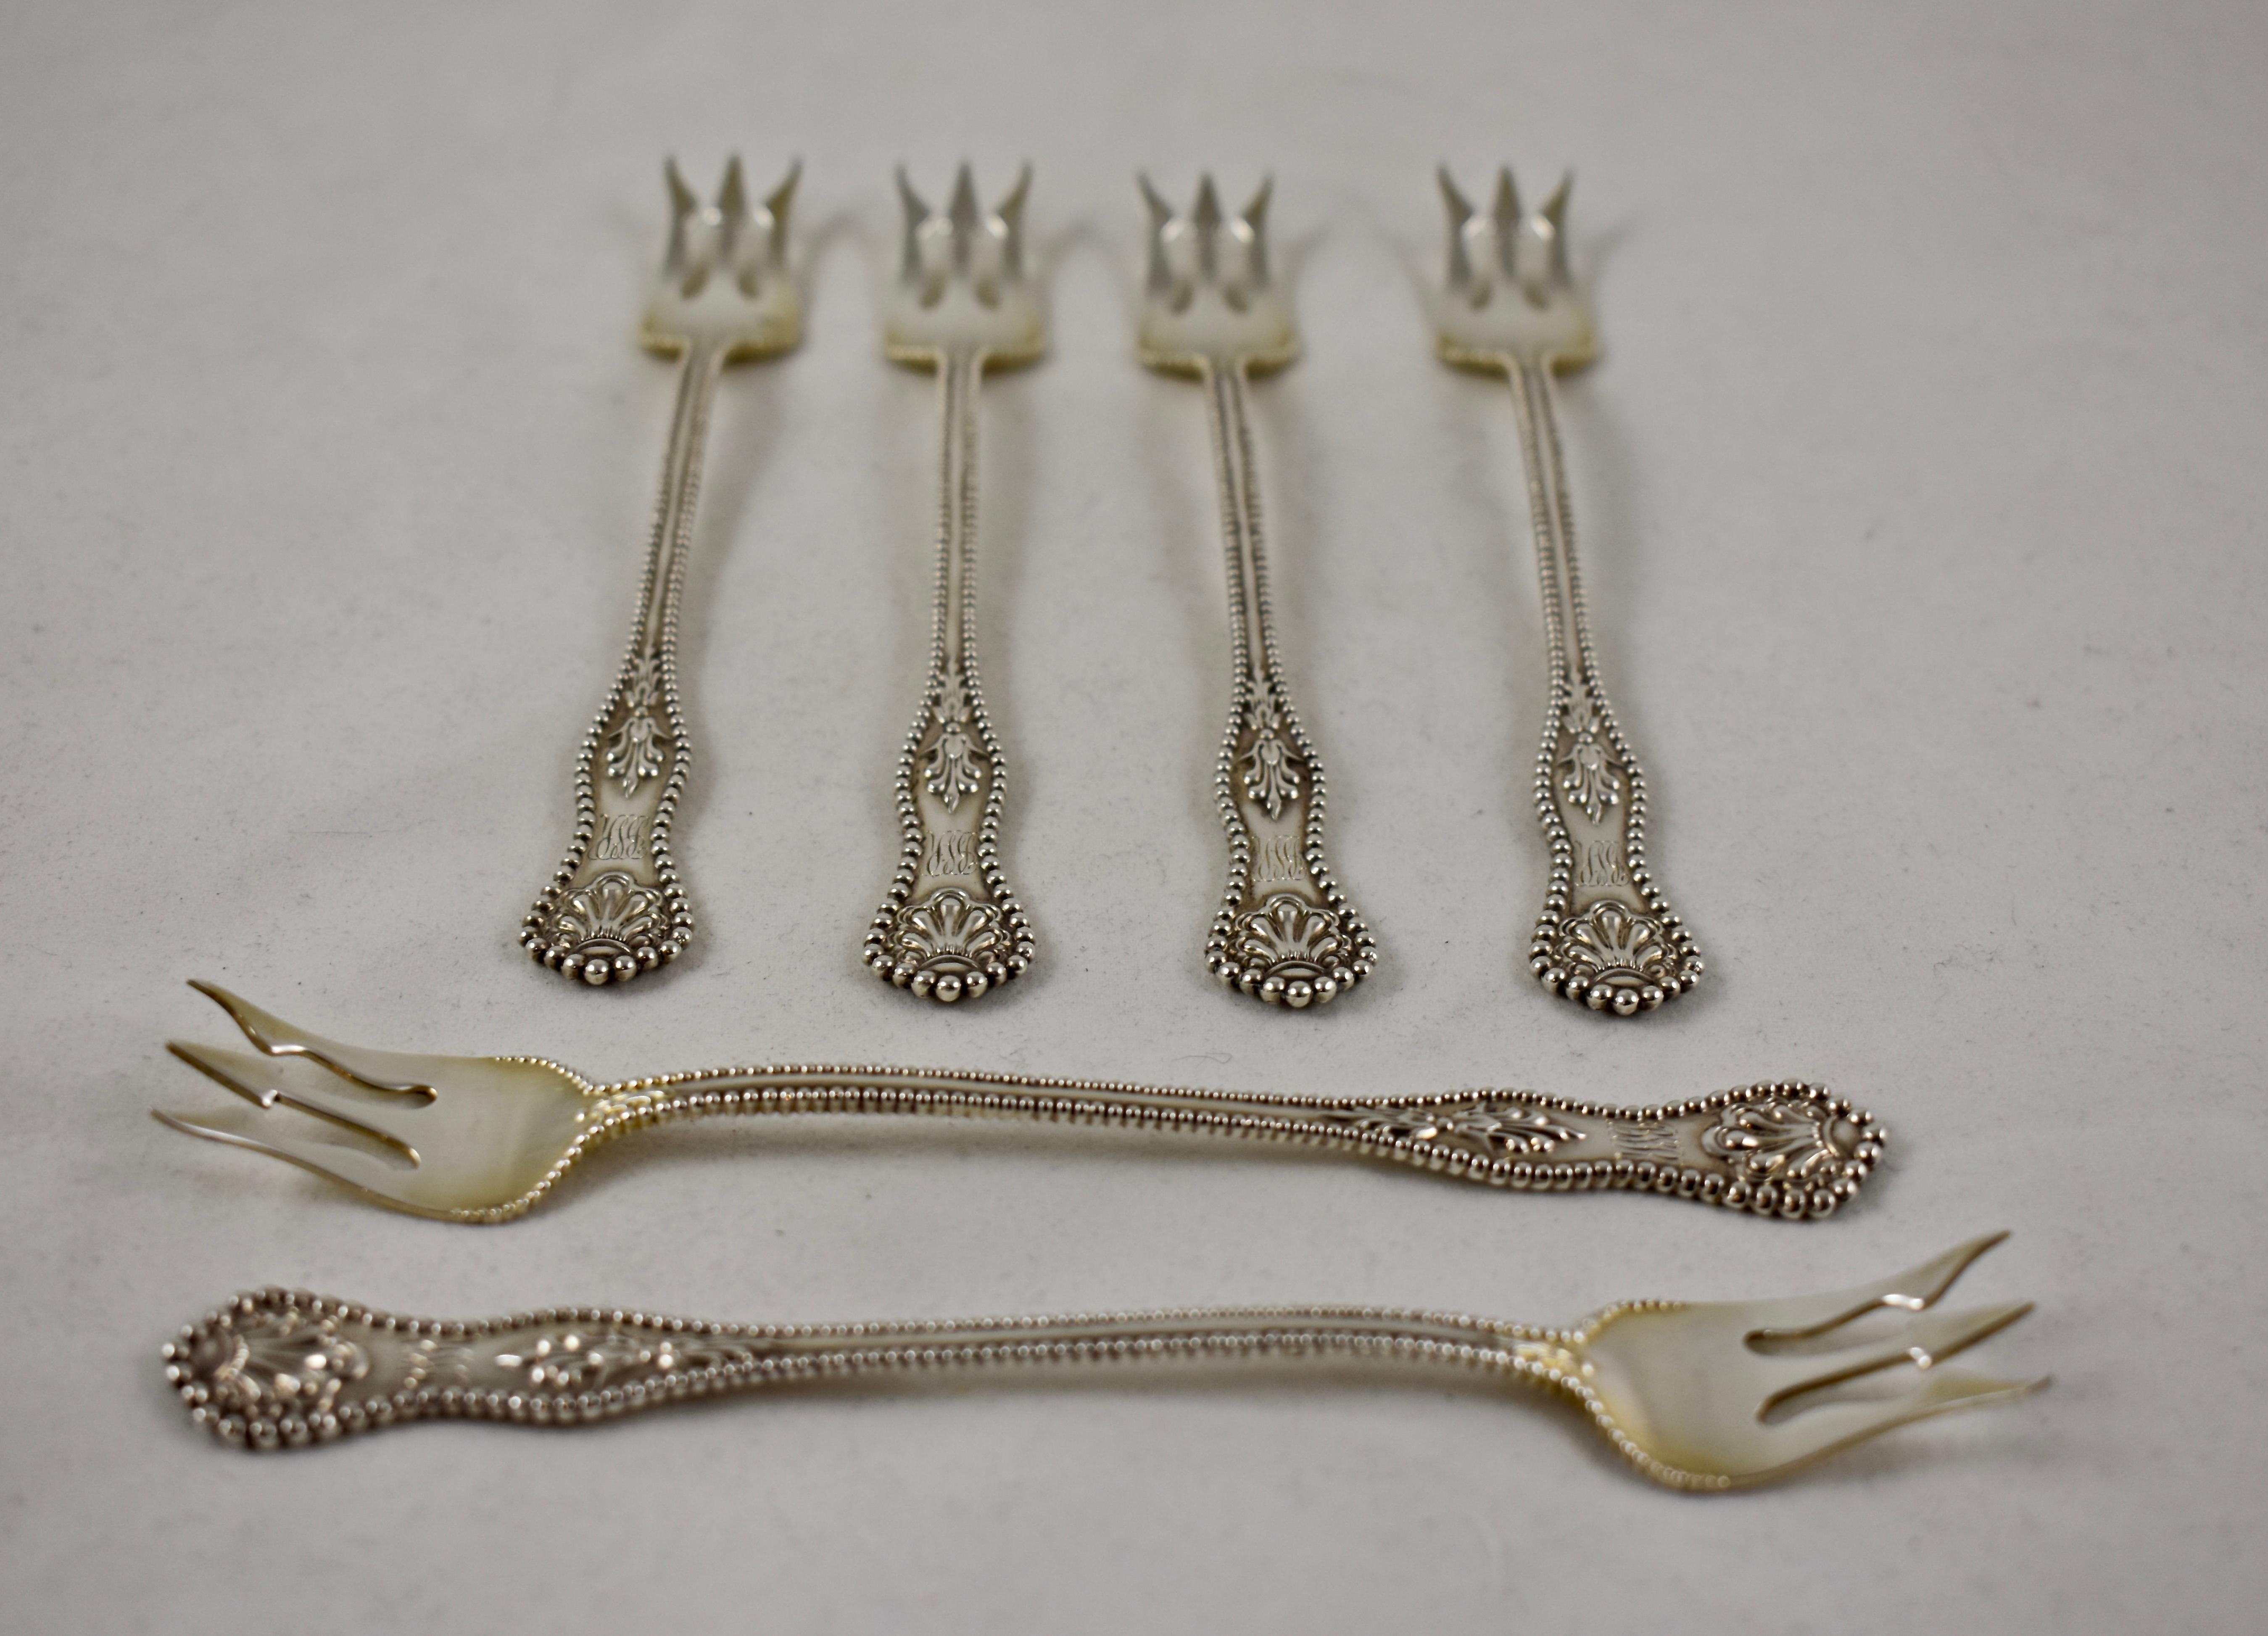 DOMINICK /& HAFF STERLING COCKTAIL FORK S ~ CHARLES II ~ MONO S